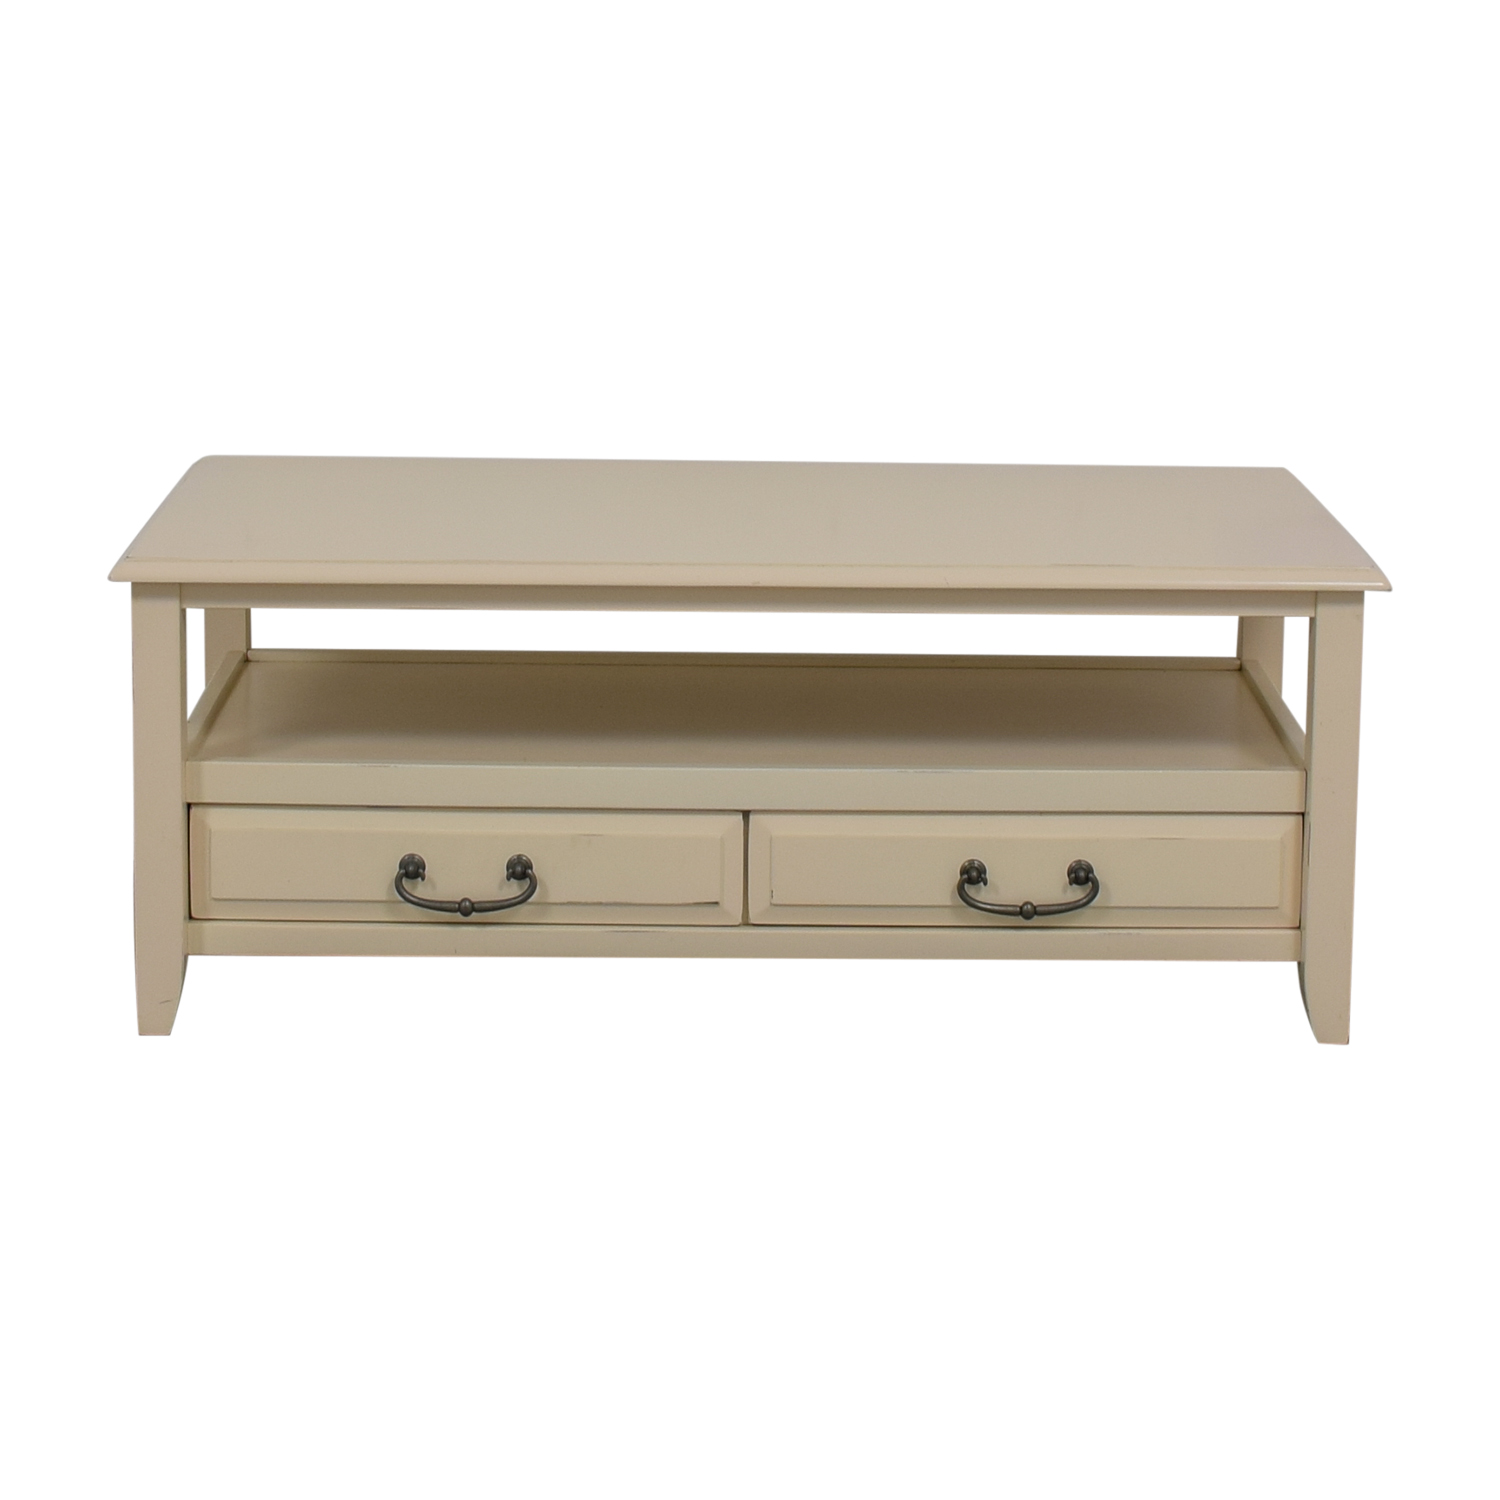 Pier 1 Imports White Two-Drawer Coffee Table / Coffee Tables